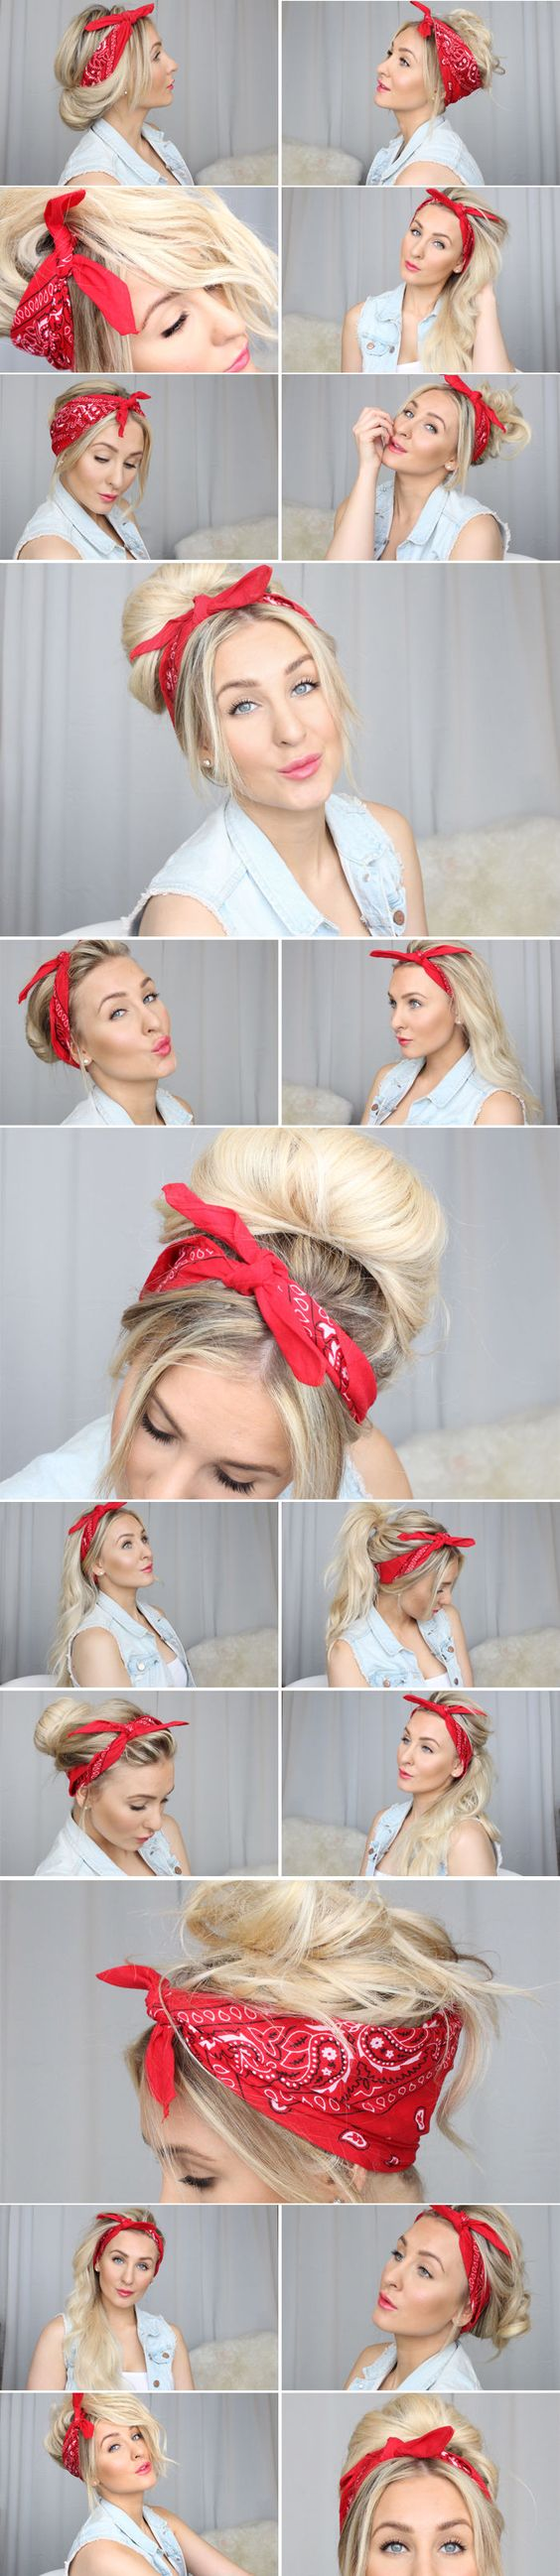 Different ways to wear a bandana. Her facial expressions are killing me, but the hair's cute.